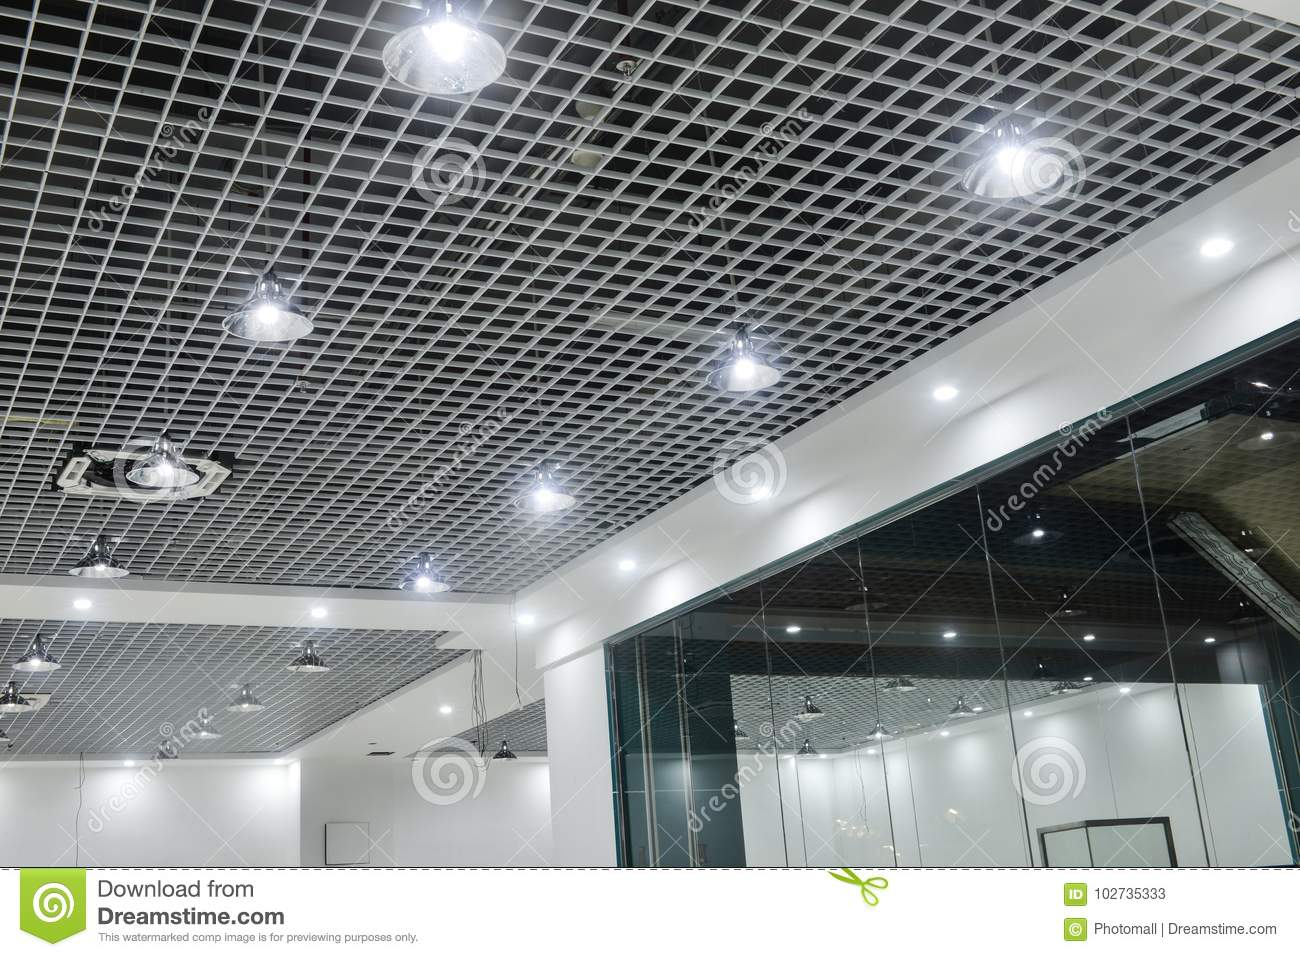 Led Ceiling Lights On Modern Commercial Building Suspended Ceiling Stock Image Image Of Commercial Glass 102735333